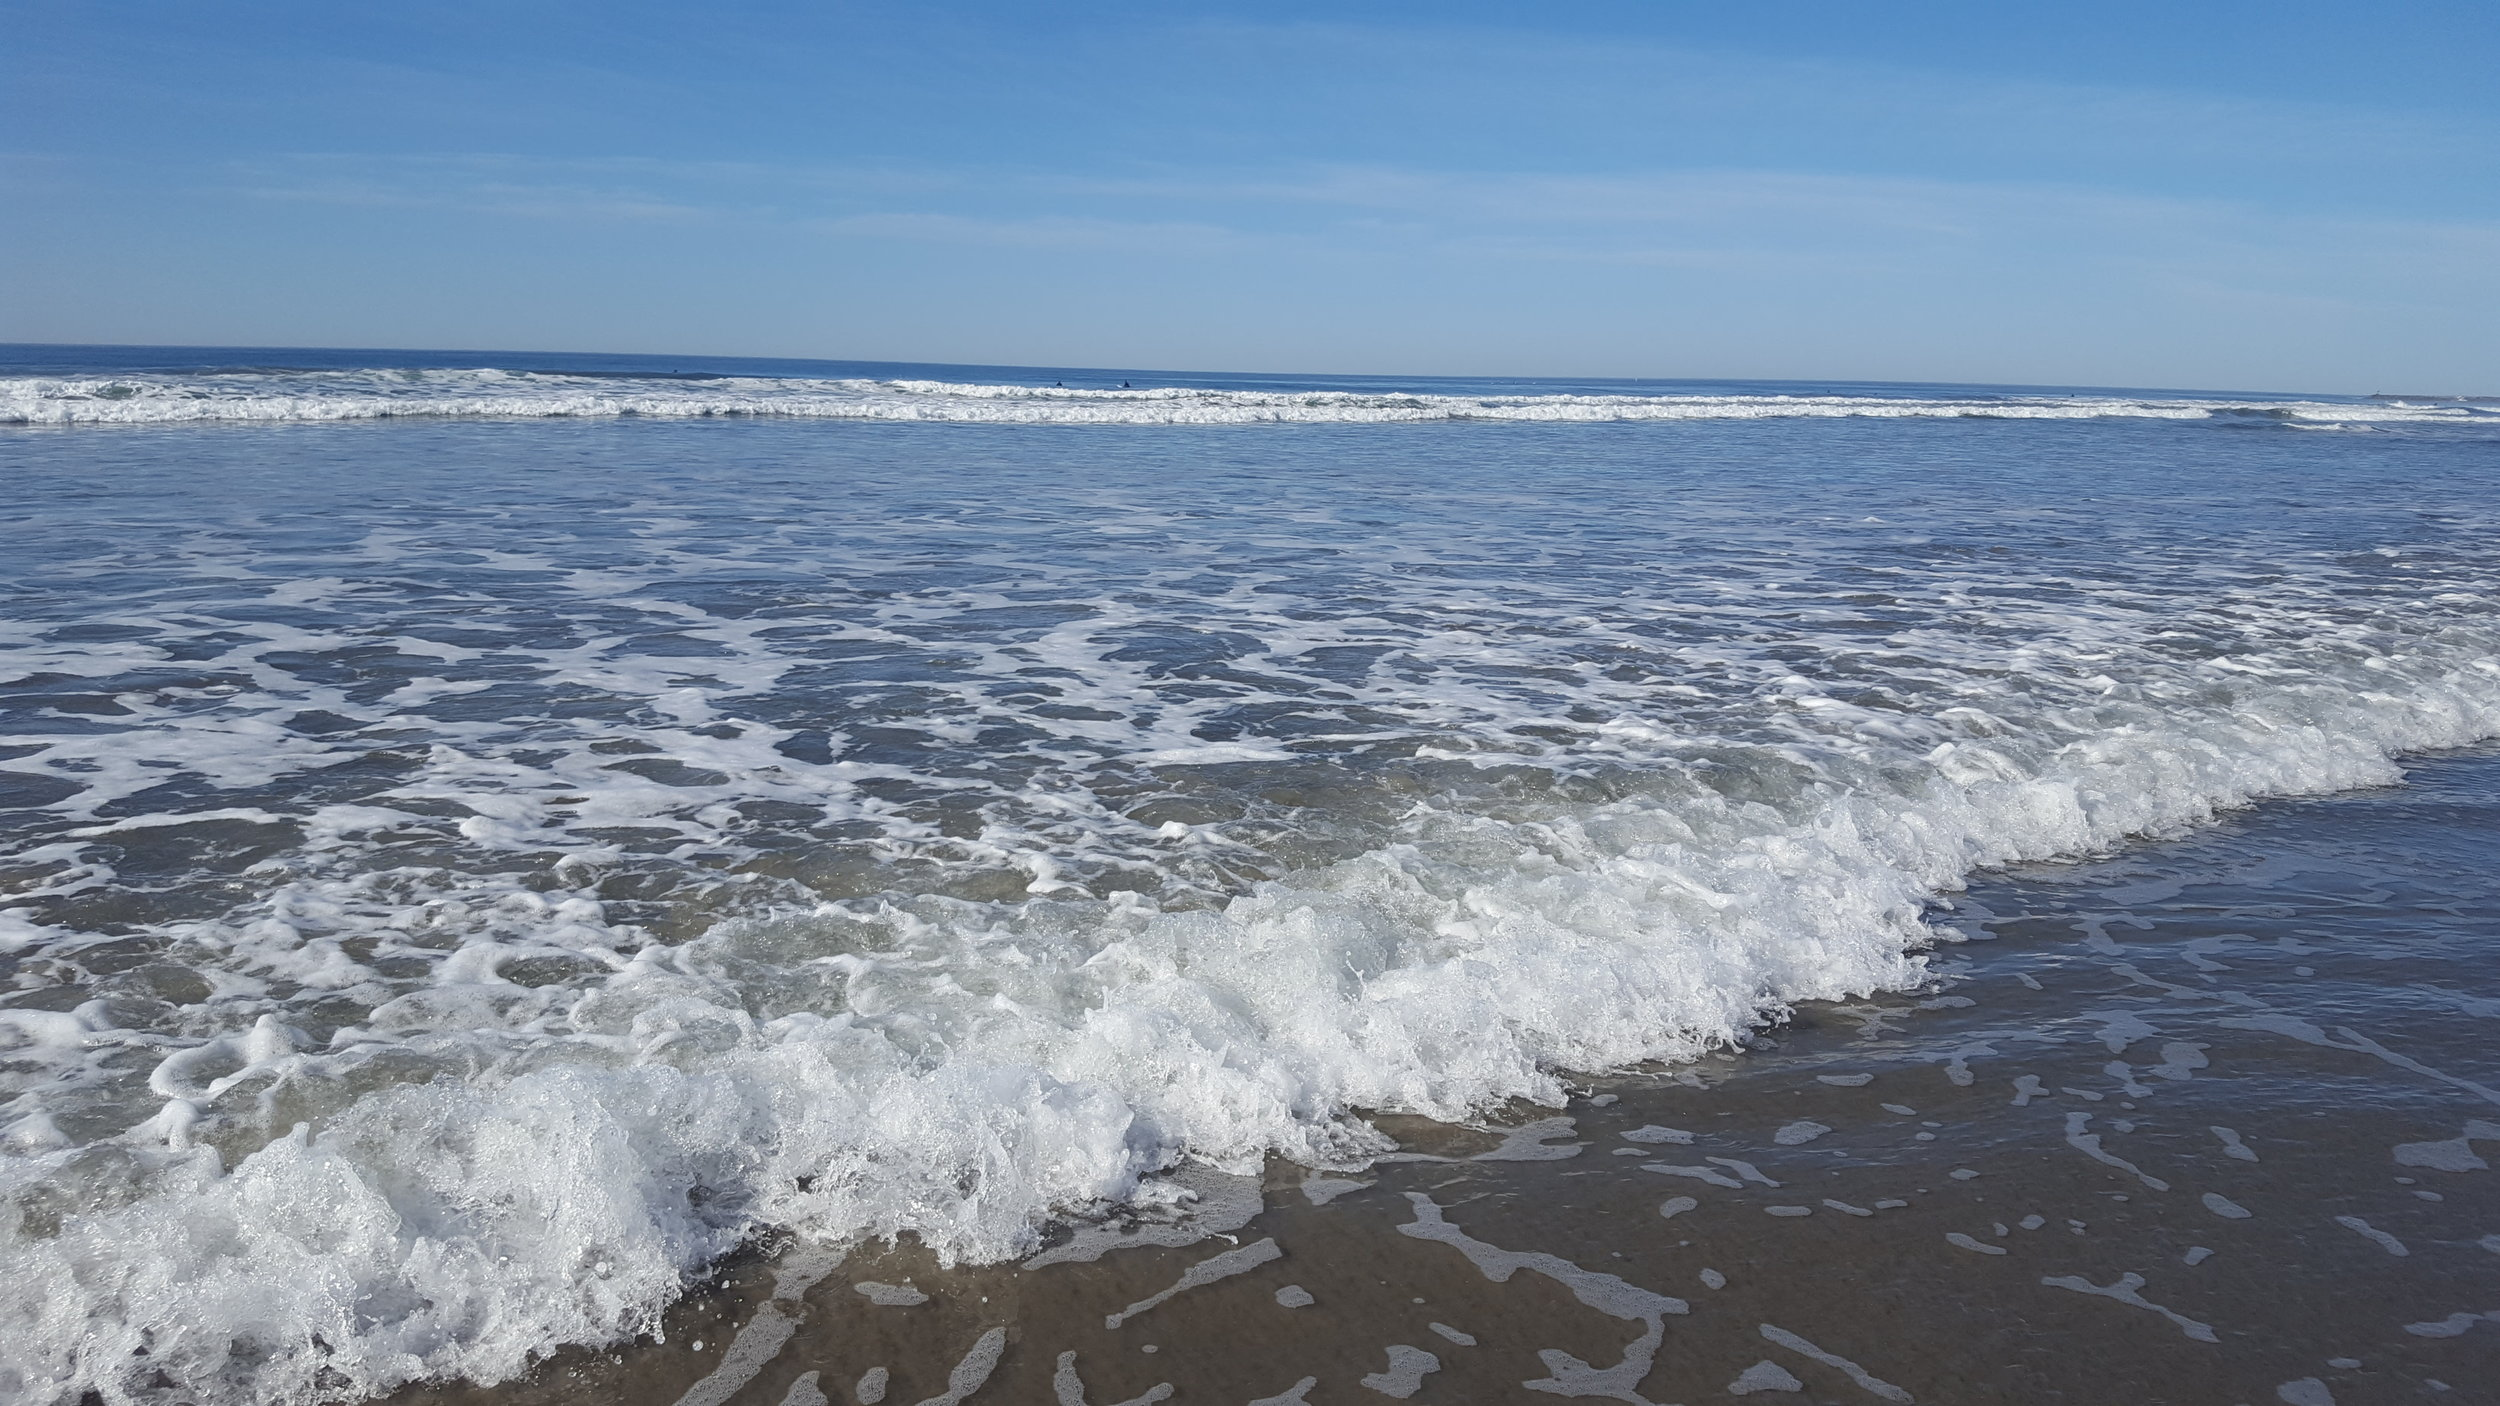 Ebb and Flow #2: Oceanside, Ca